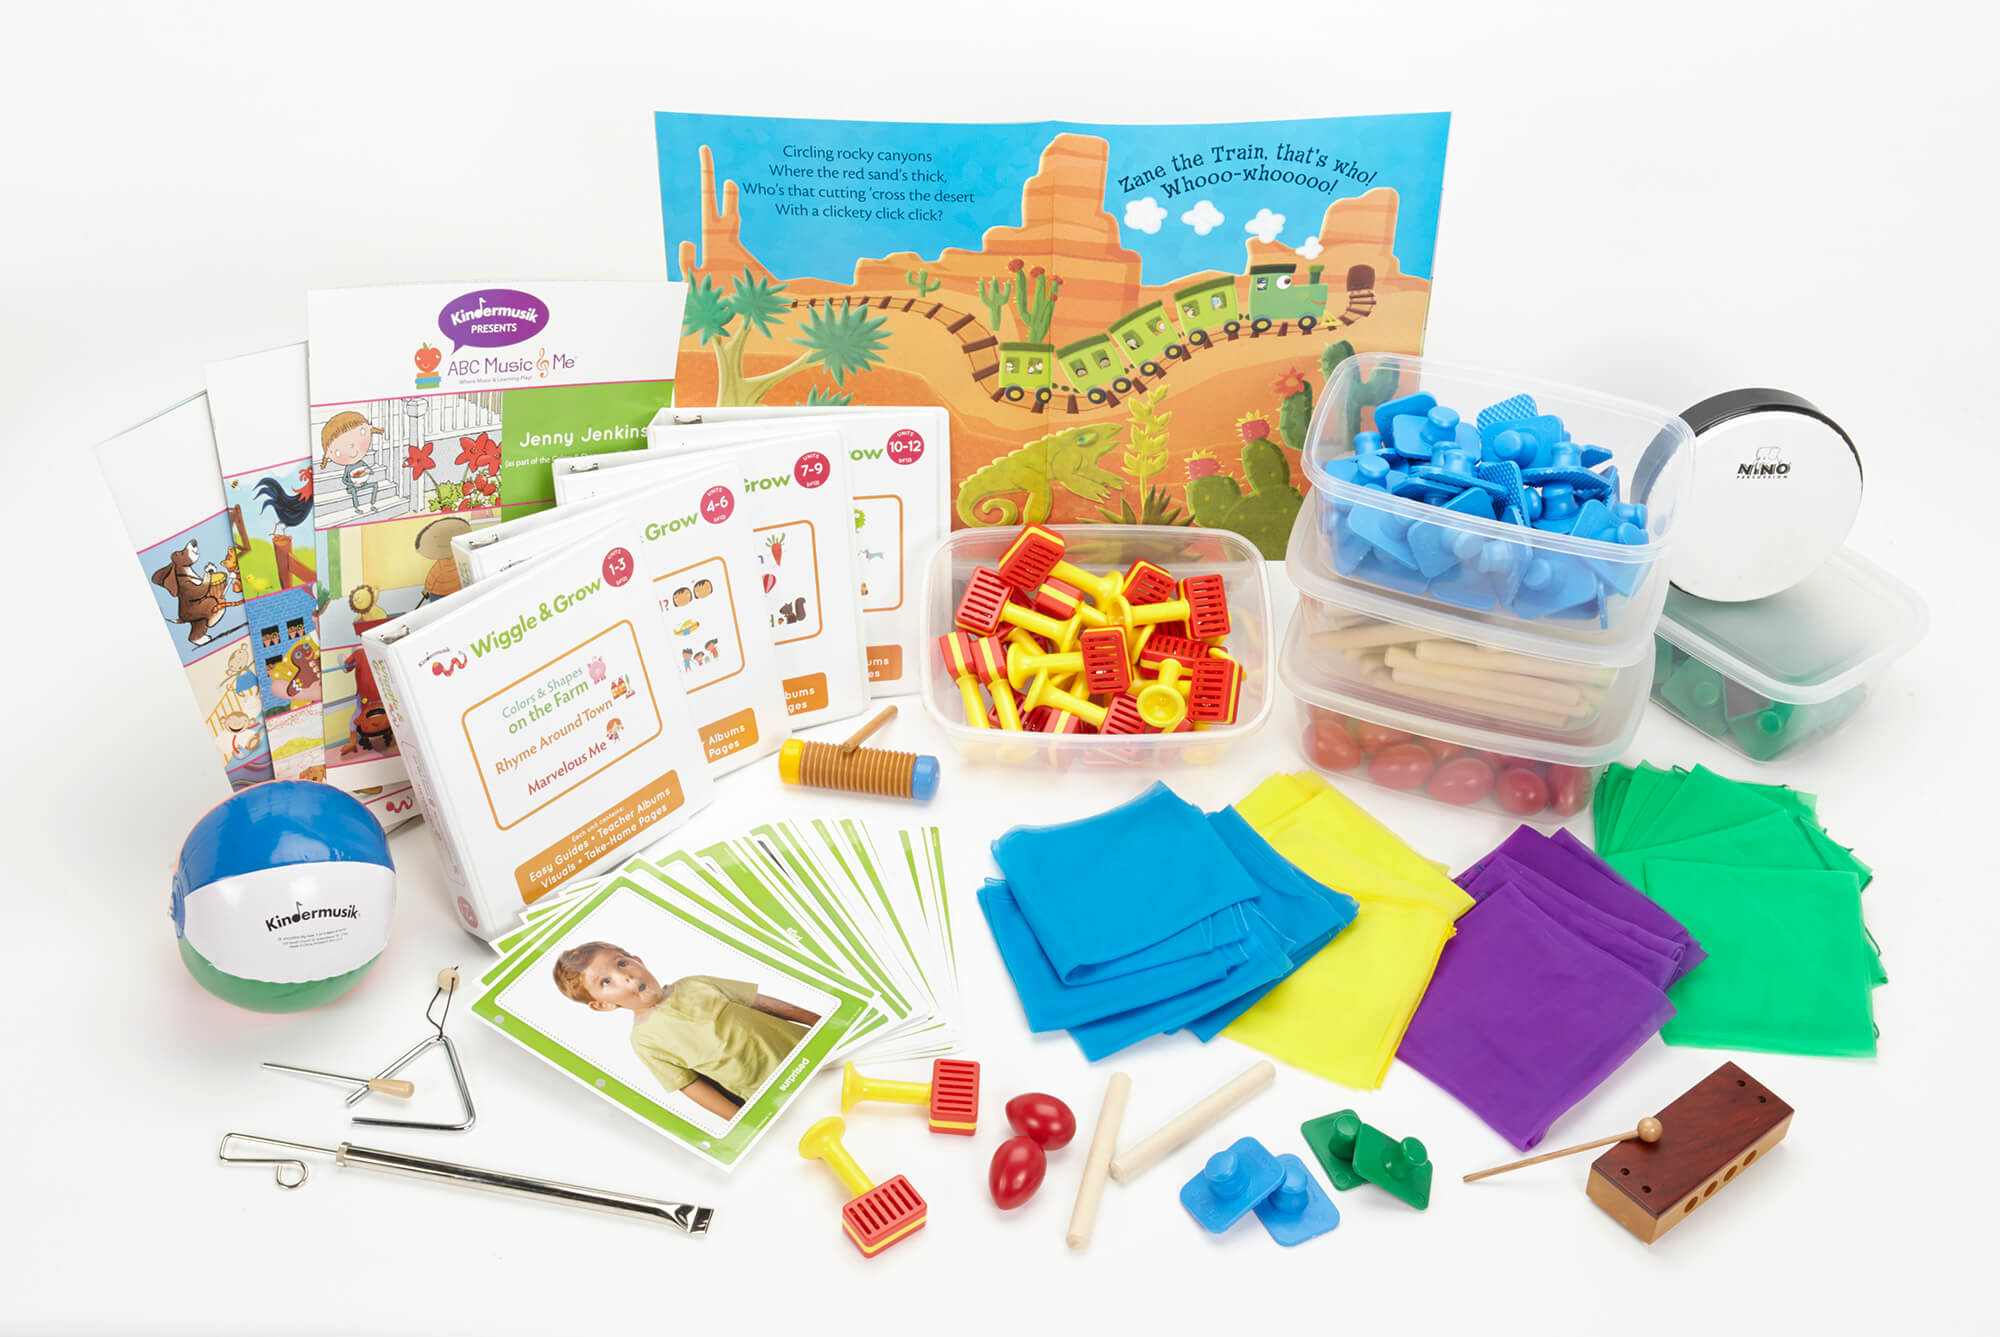 Photo_Kindermusik-Schools_Product_Image-WG-CurriculumKit-13-00-00015